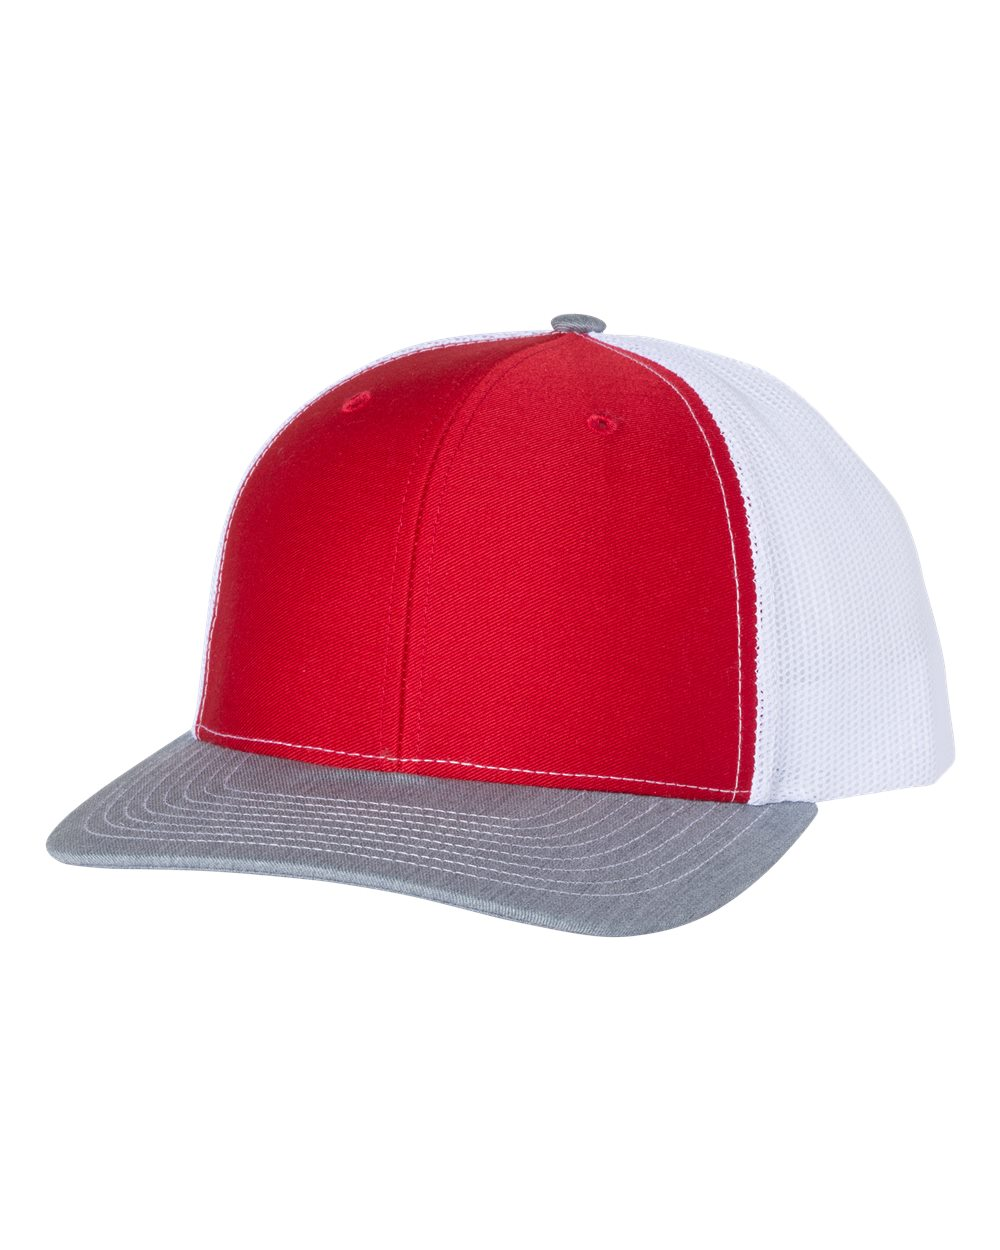 click to view Red/ White/ Heather Grey